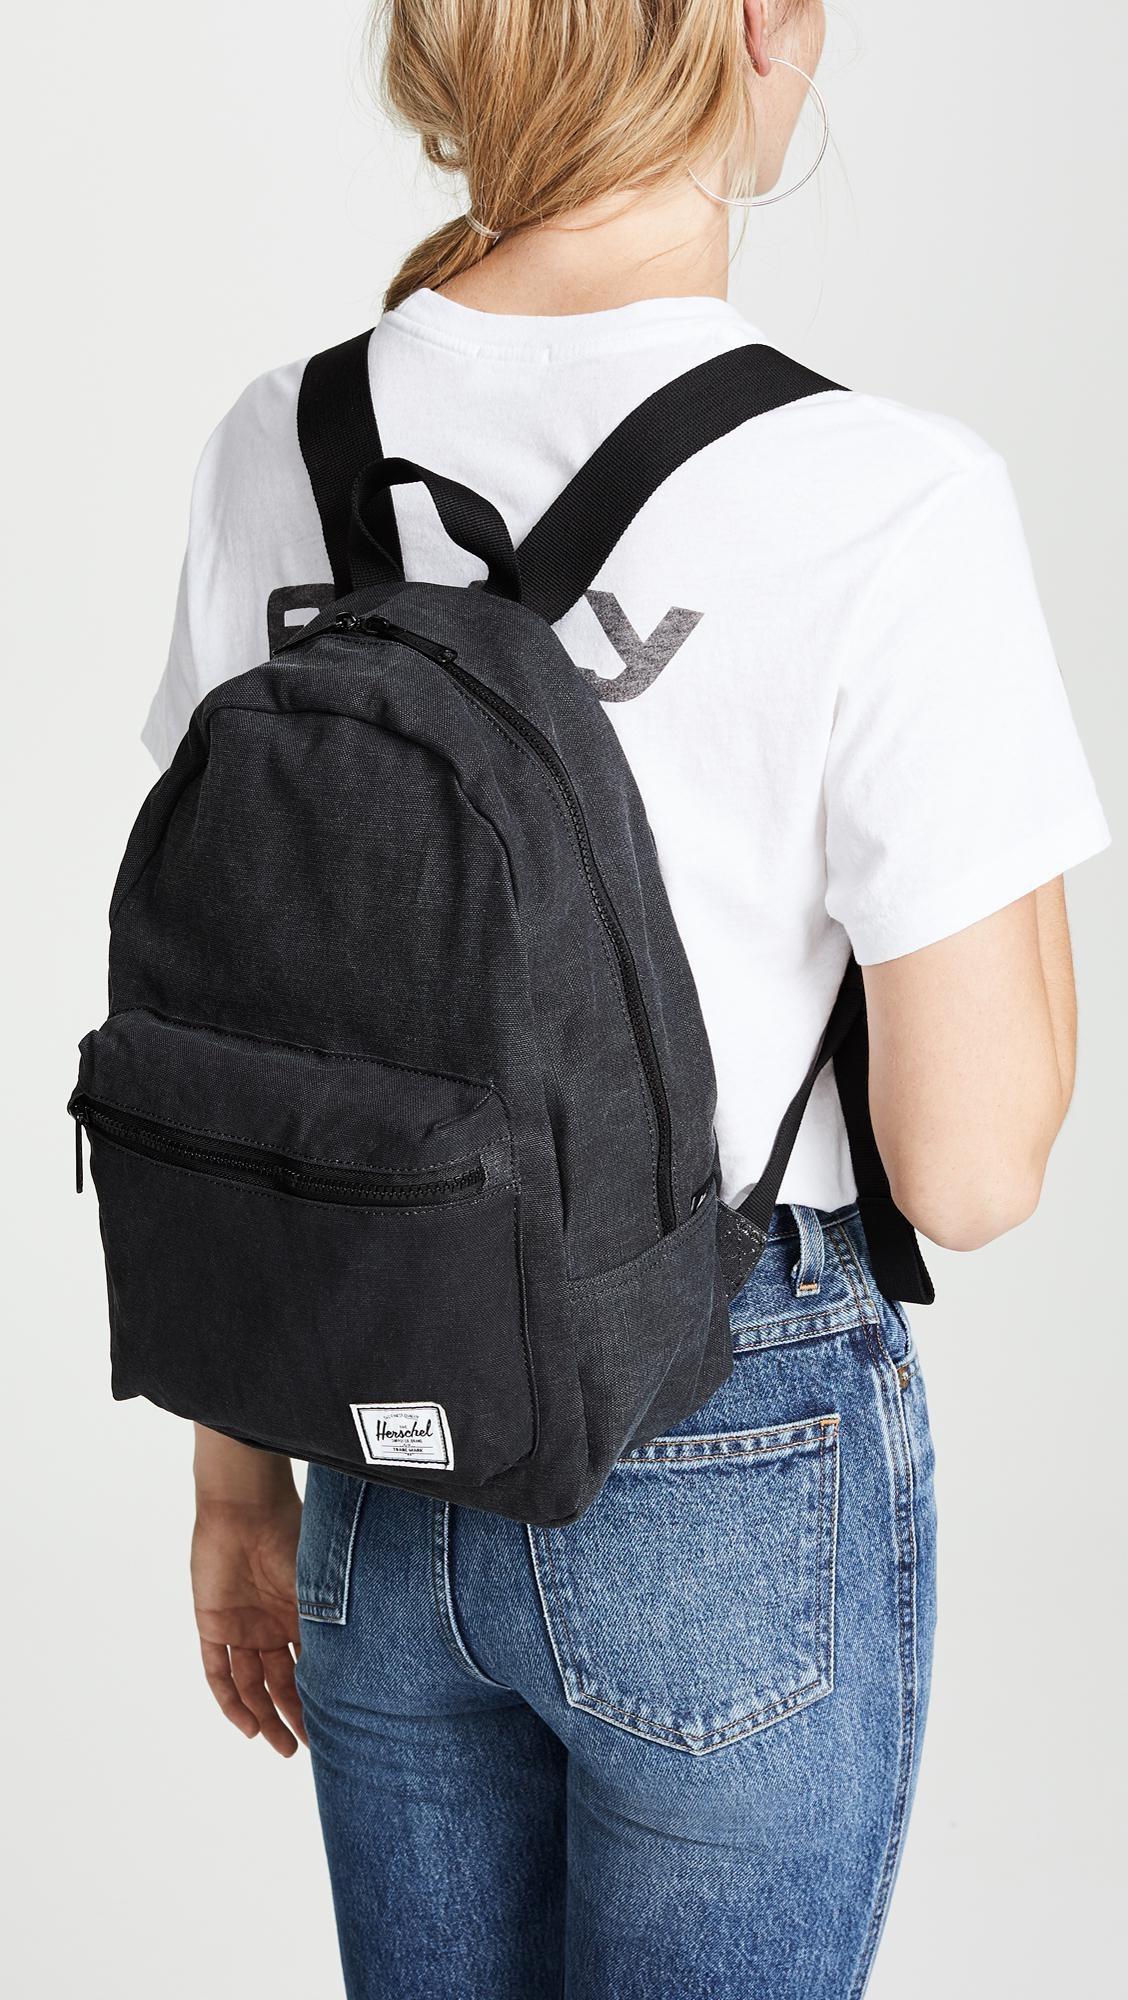 29fae696fd0 Herschel Supply Co. Cotton Casual Grove X-small Backpack in Black - Lyst